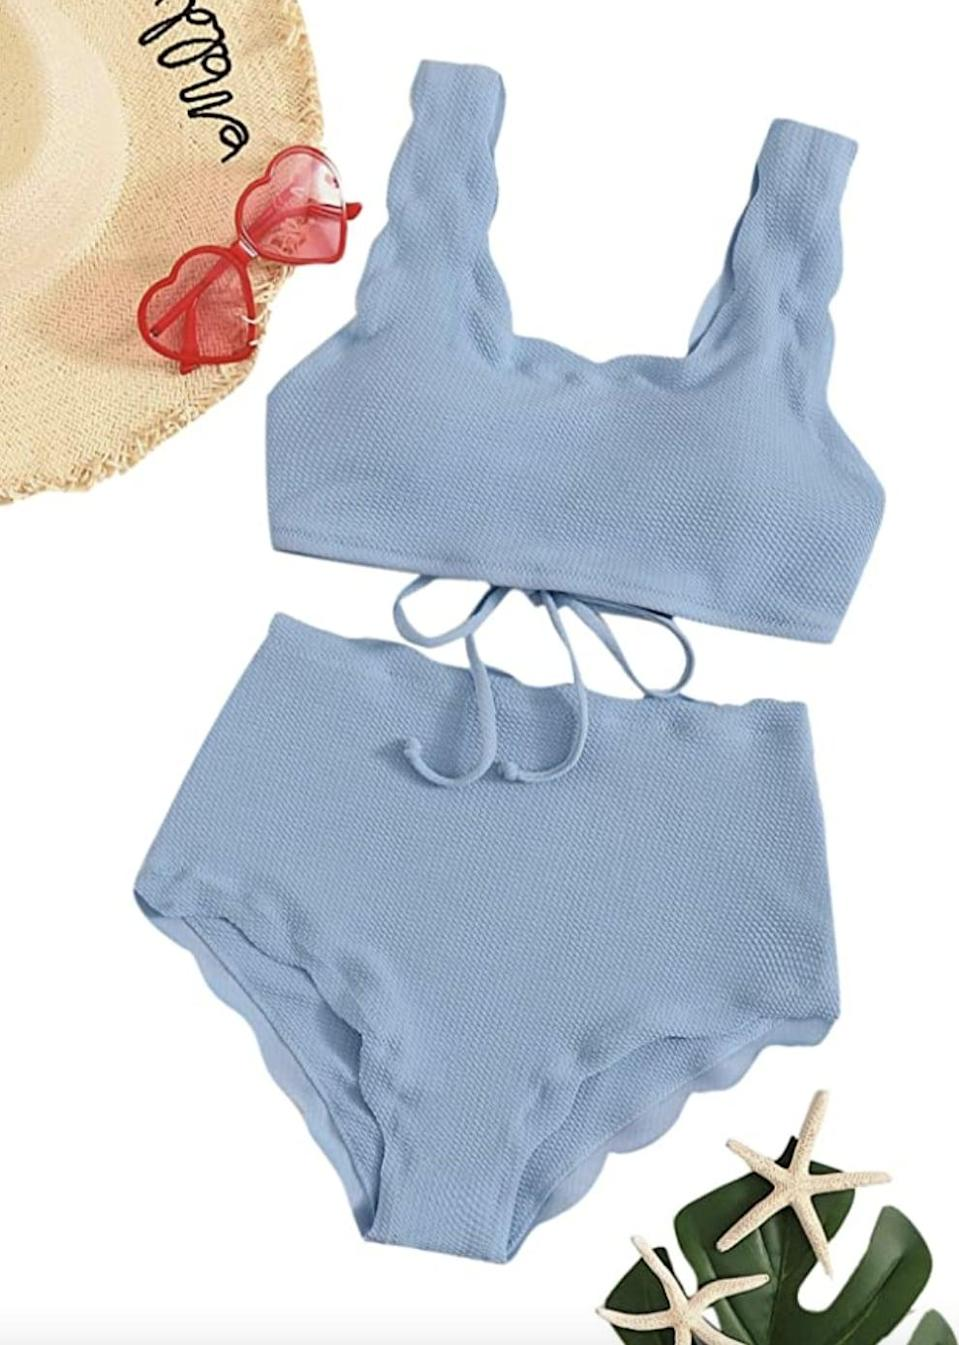 <p>This <span>SweatyRocks High-Waist Scalloped Bikini</span> ($23) has a charming silhouette and playful color palette you'll be sure to love.</p>